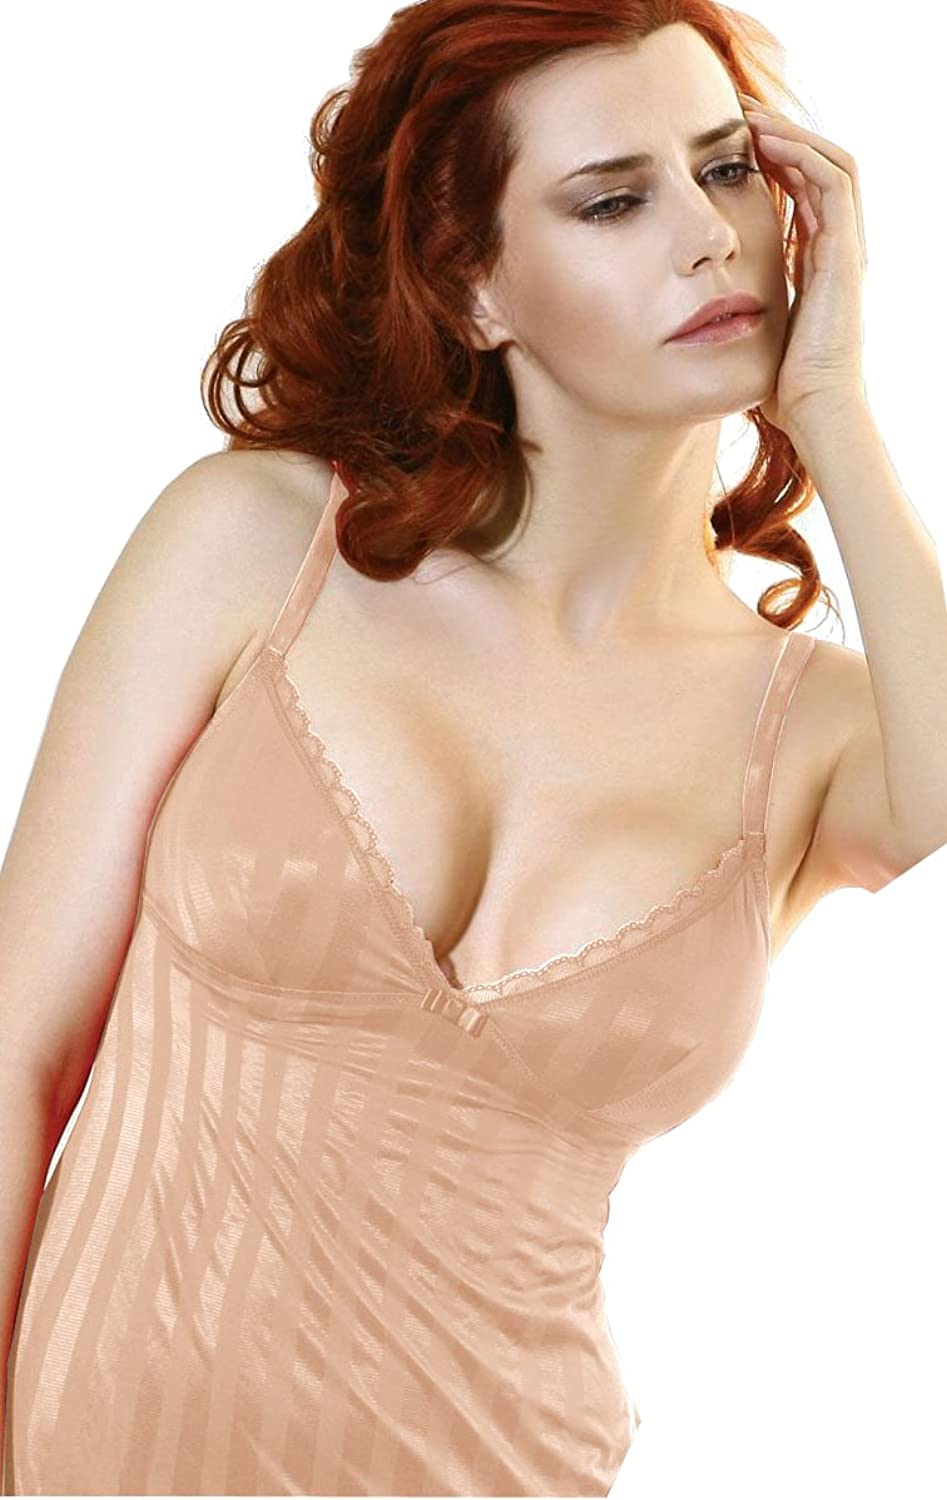 Jolidon Negligee, Baby Doll, Nachthemd Linie Color Cocktailsoft Cup L1632